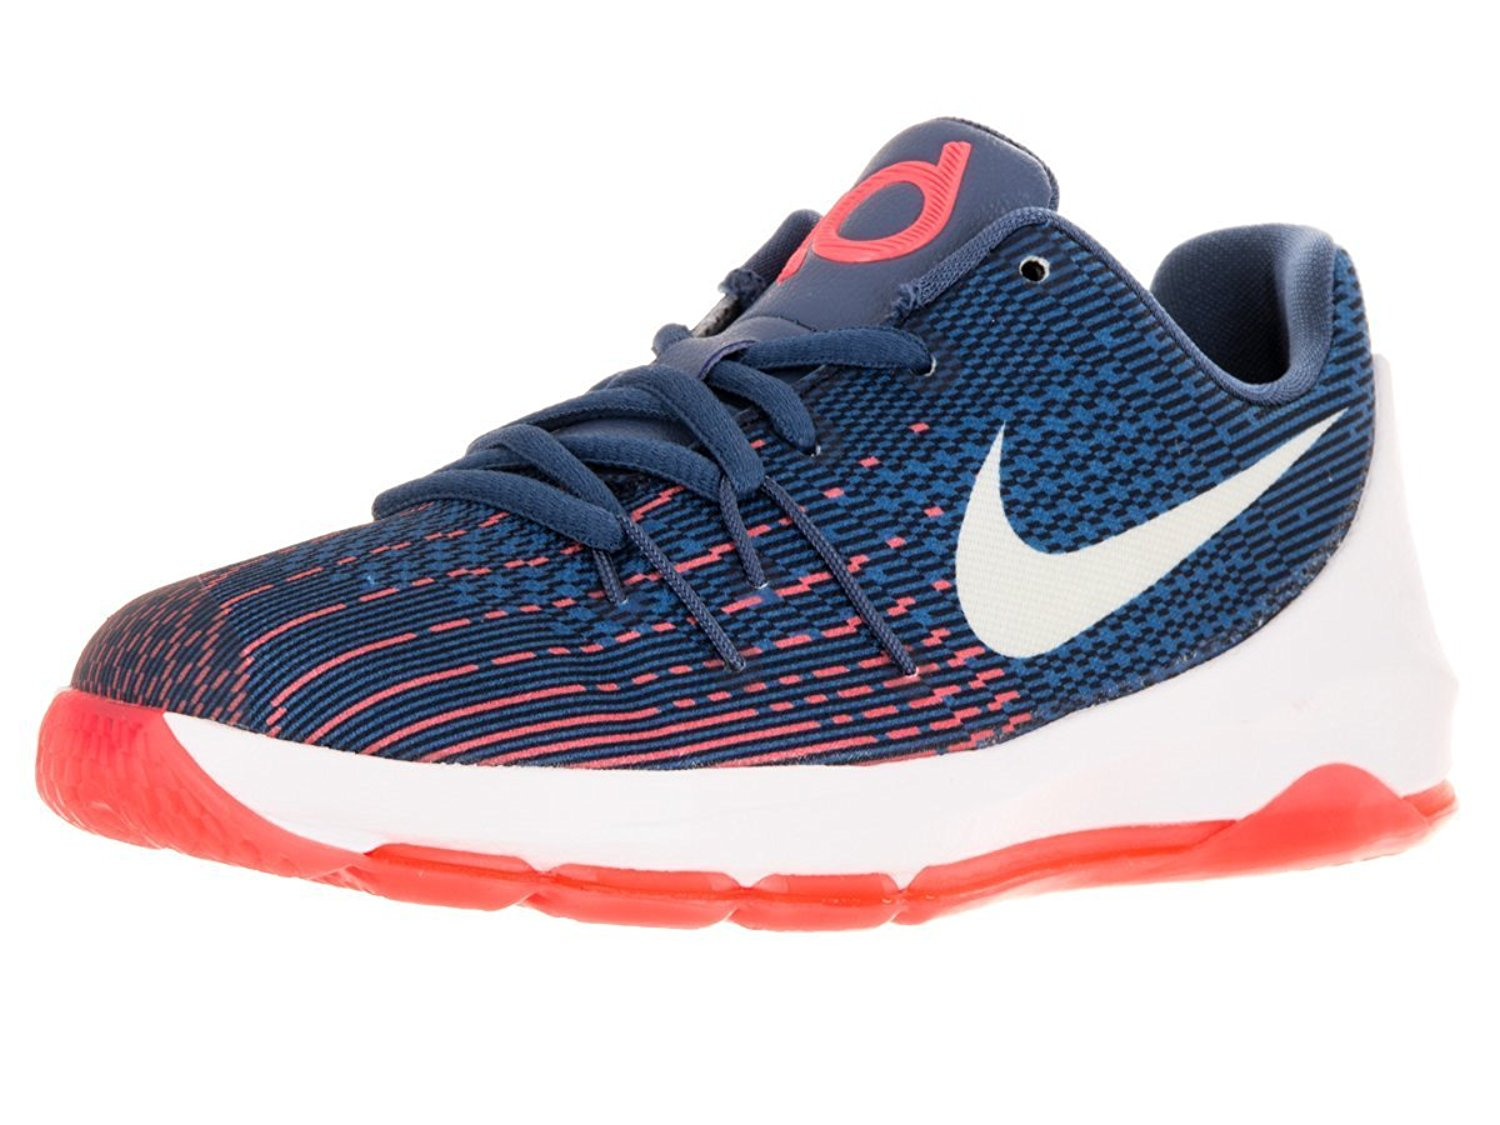 Nike Kids KD 8 Basketball Shoes-OceanFog/White-MidNavy-Phtblue - Walmart.com